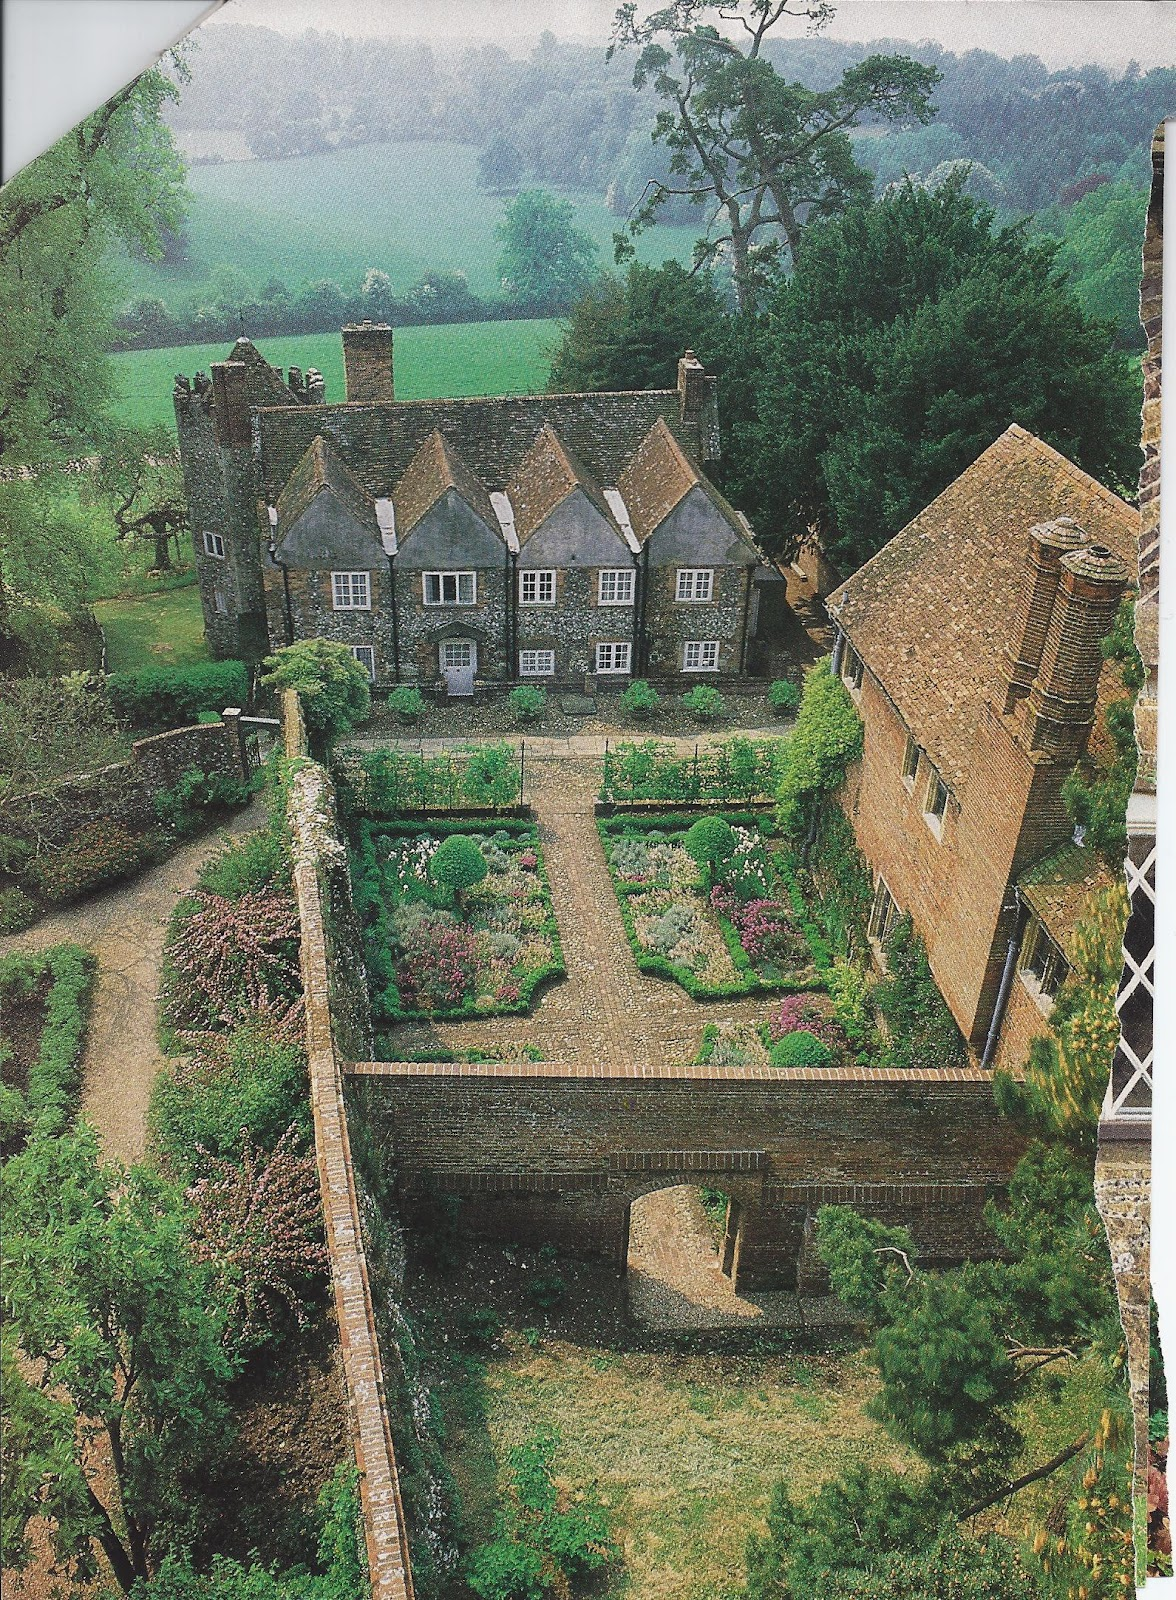 British Country Homes: The Charm Of Home: The Joy Of Gardening